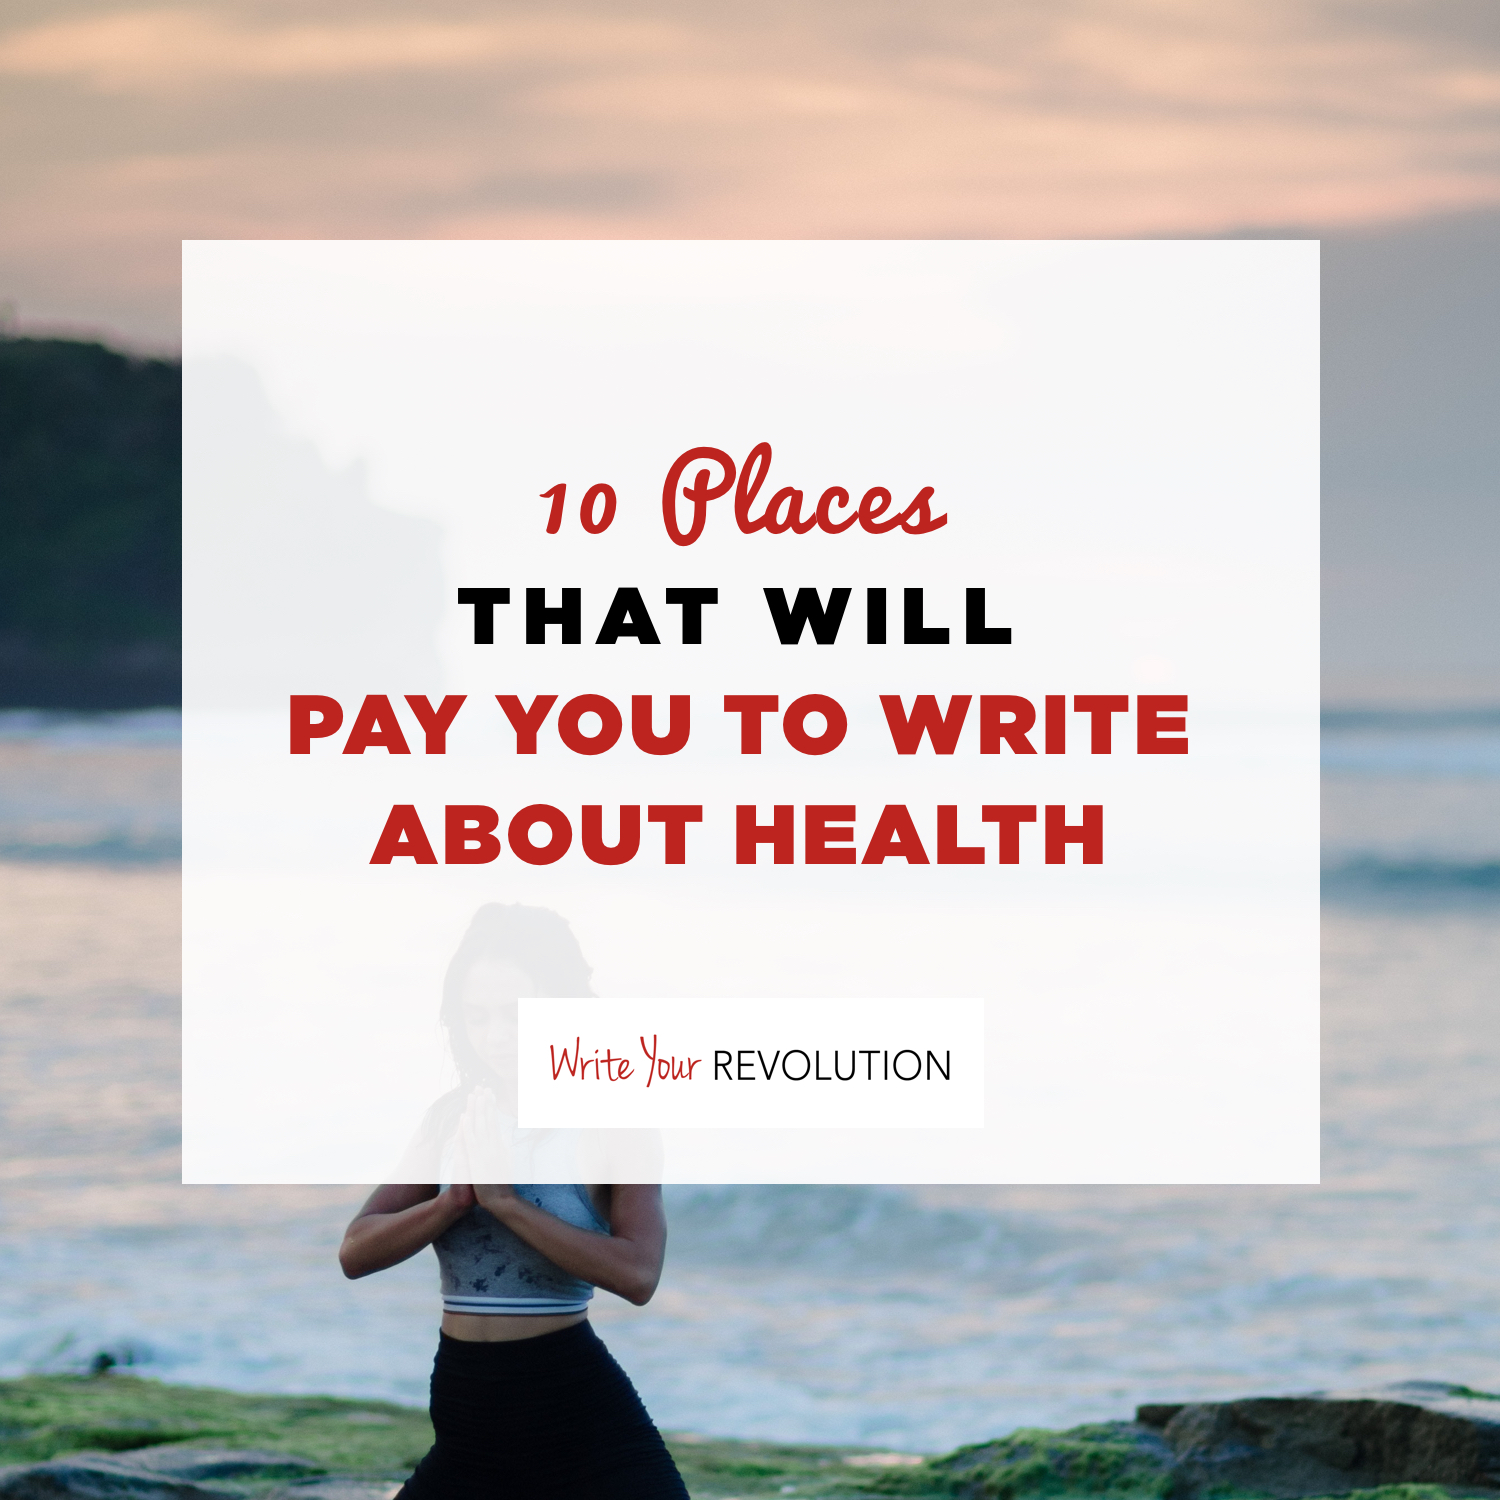 10 Places That Will Pay You to Write About Health